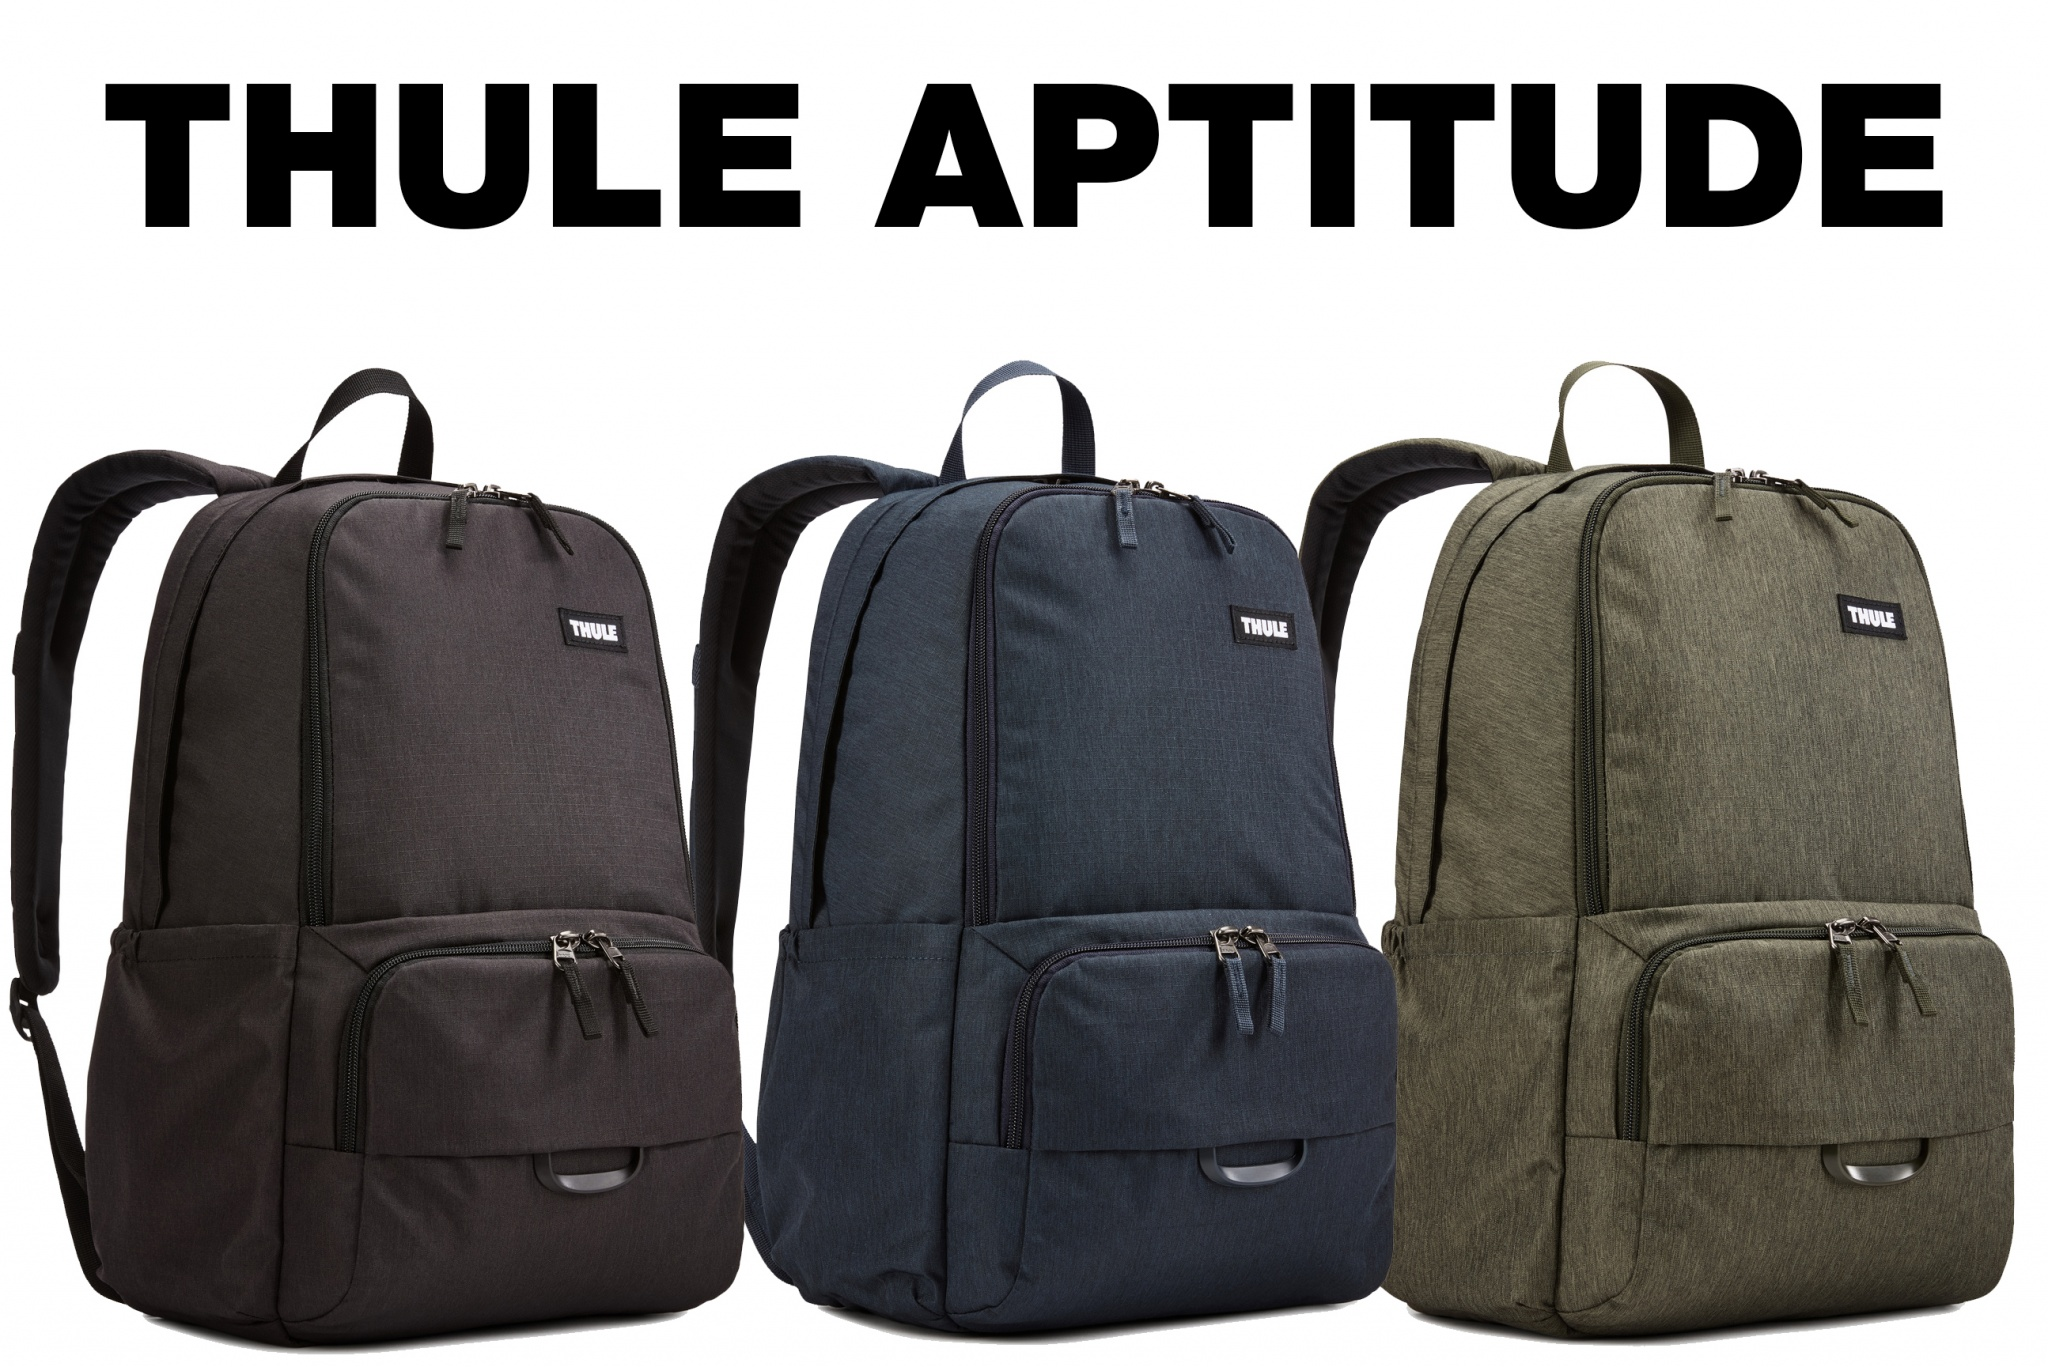 Thule aptitude backpack.jpg